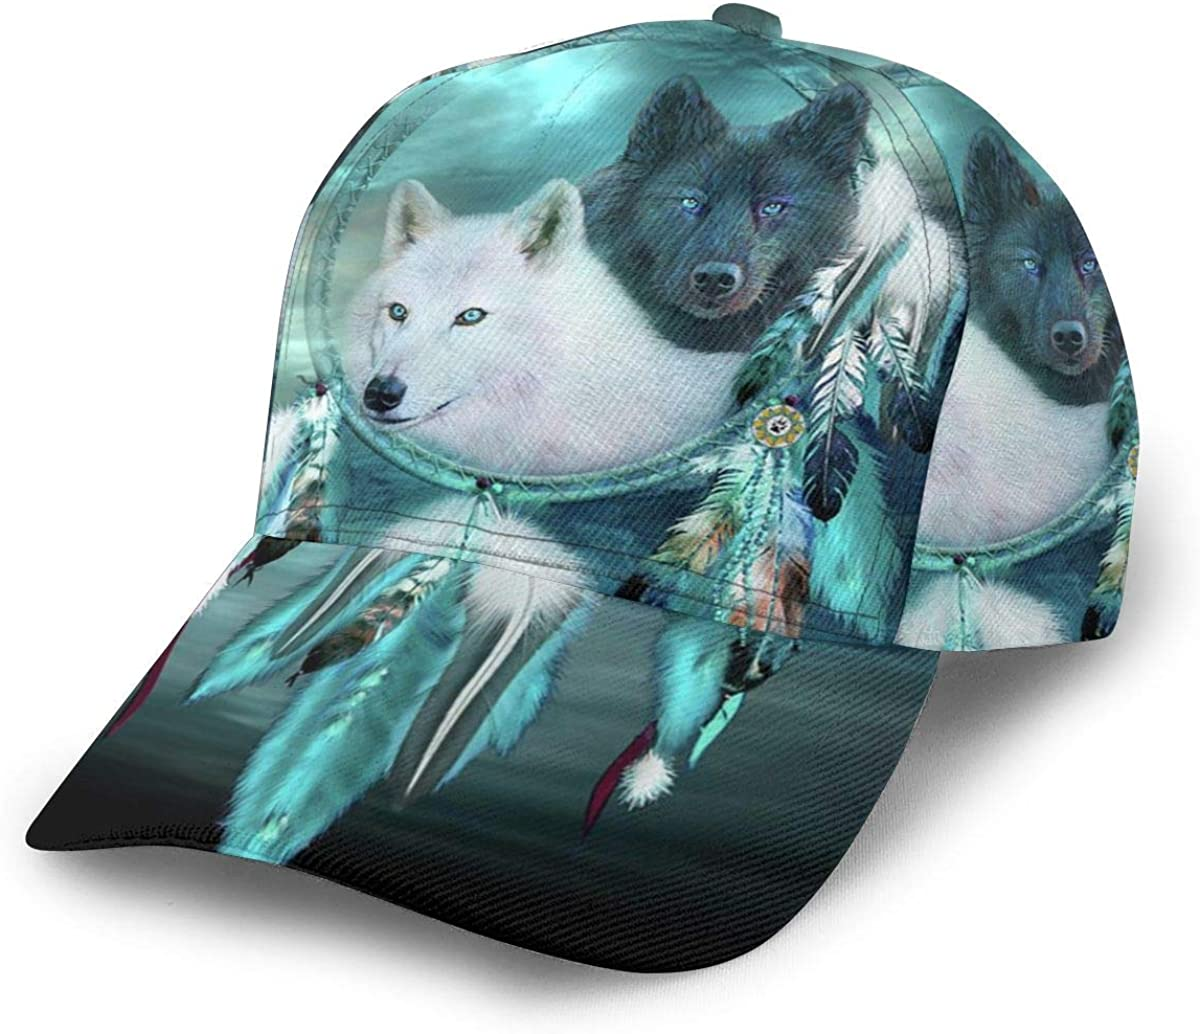 Cheap New product!! mail order specialty store Unisex Baseball Caps Native American Wolf Print 3D Catcher Dream